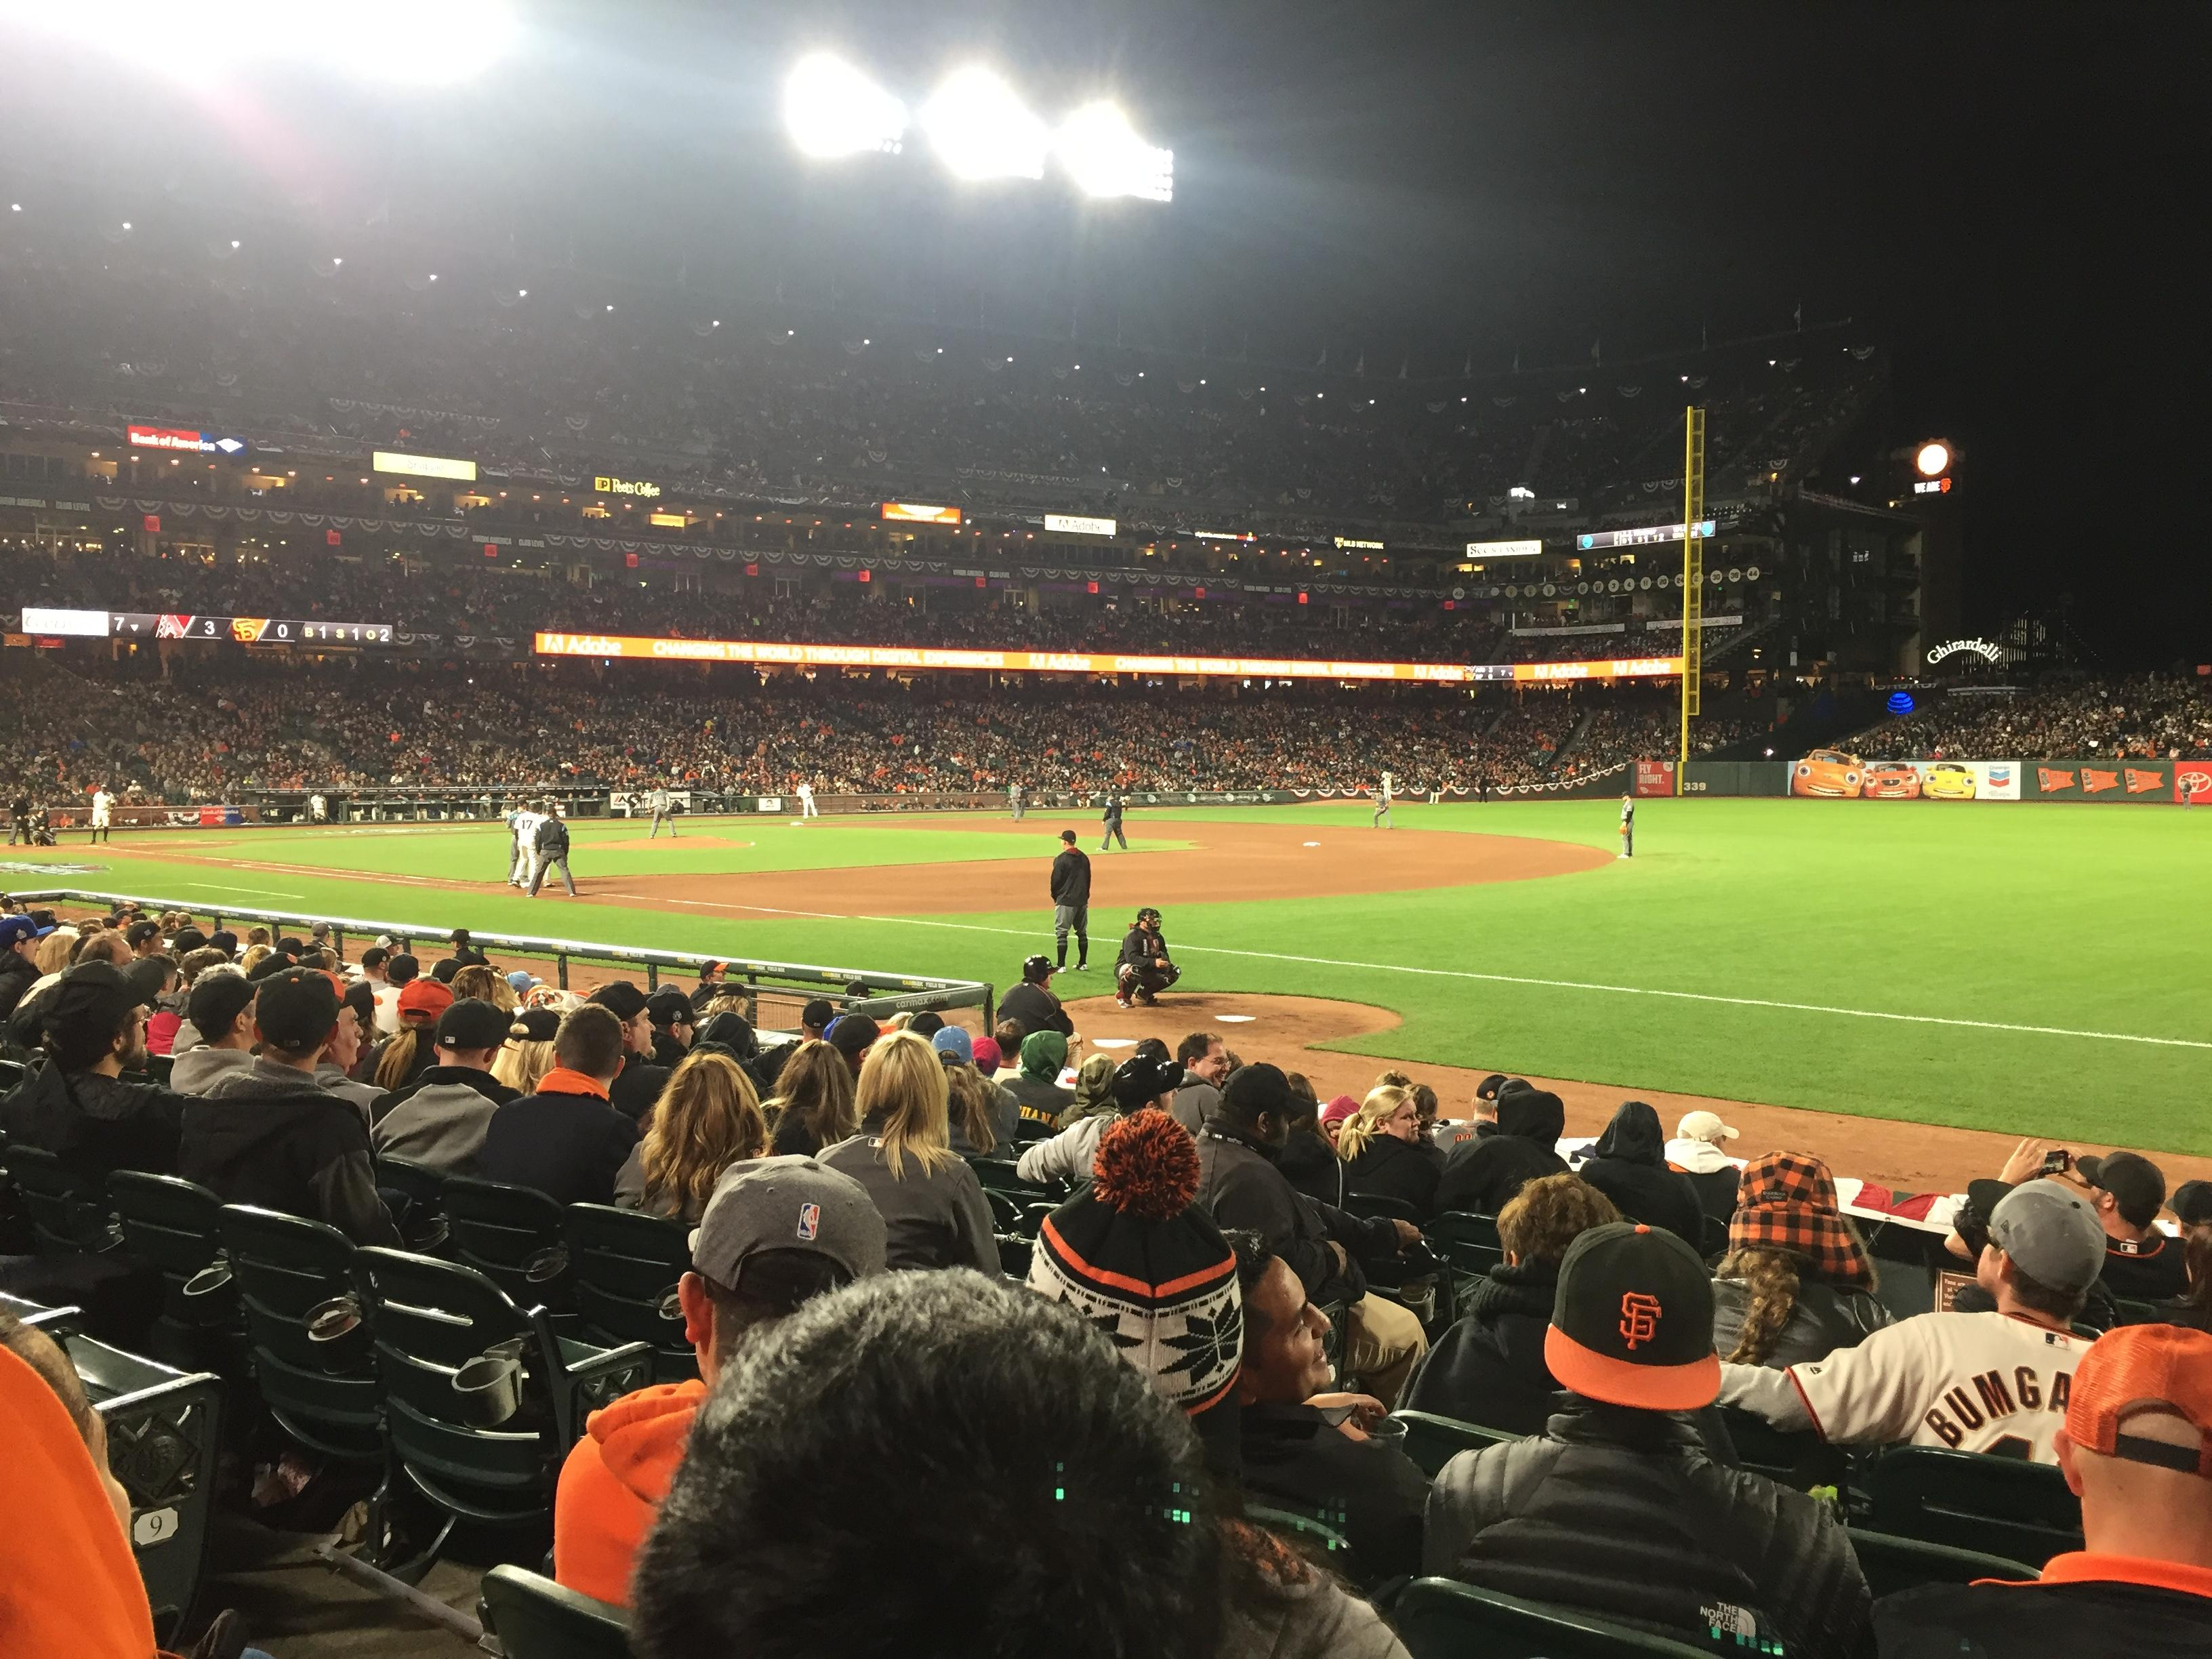 AT&T Park Section 103 Row 11 Seat 10